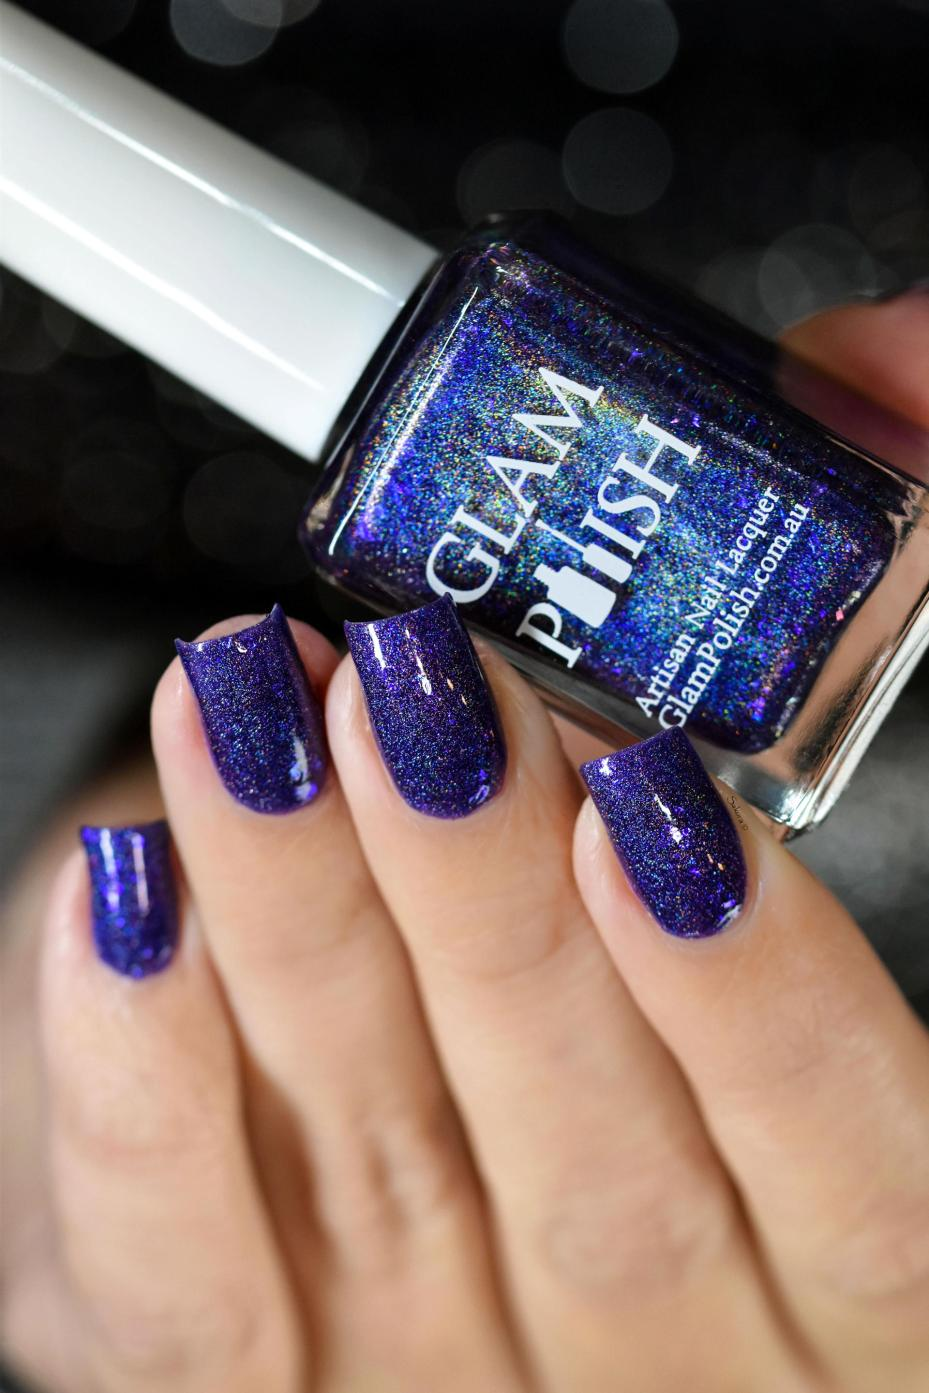 GLAMPOLISH KILLER QUEEN